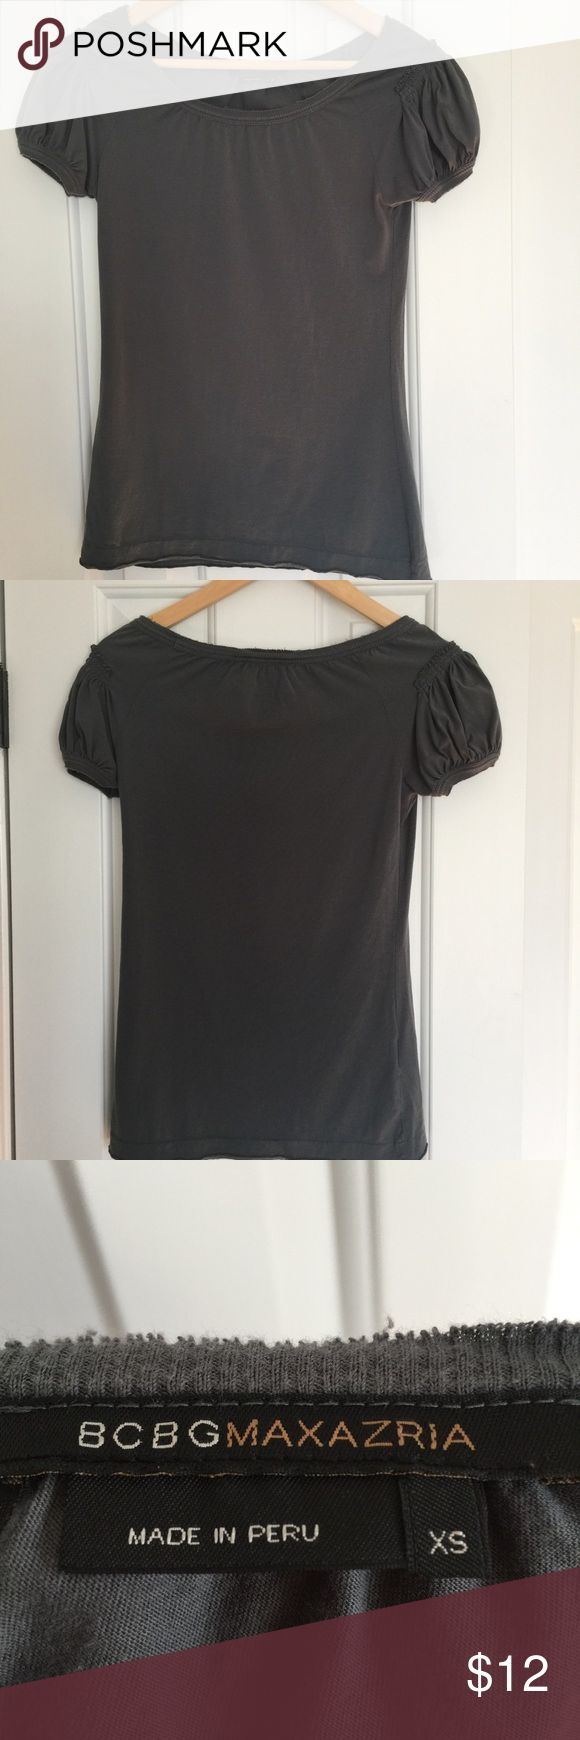 Top BCBGMaxAzria top in dark gray. Size XS. Good condition. BCBGMaxAzria Tops